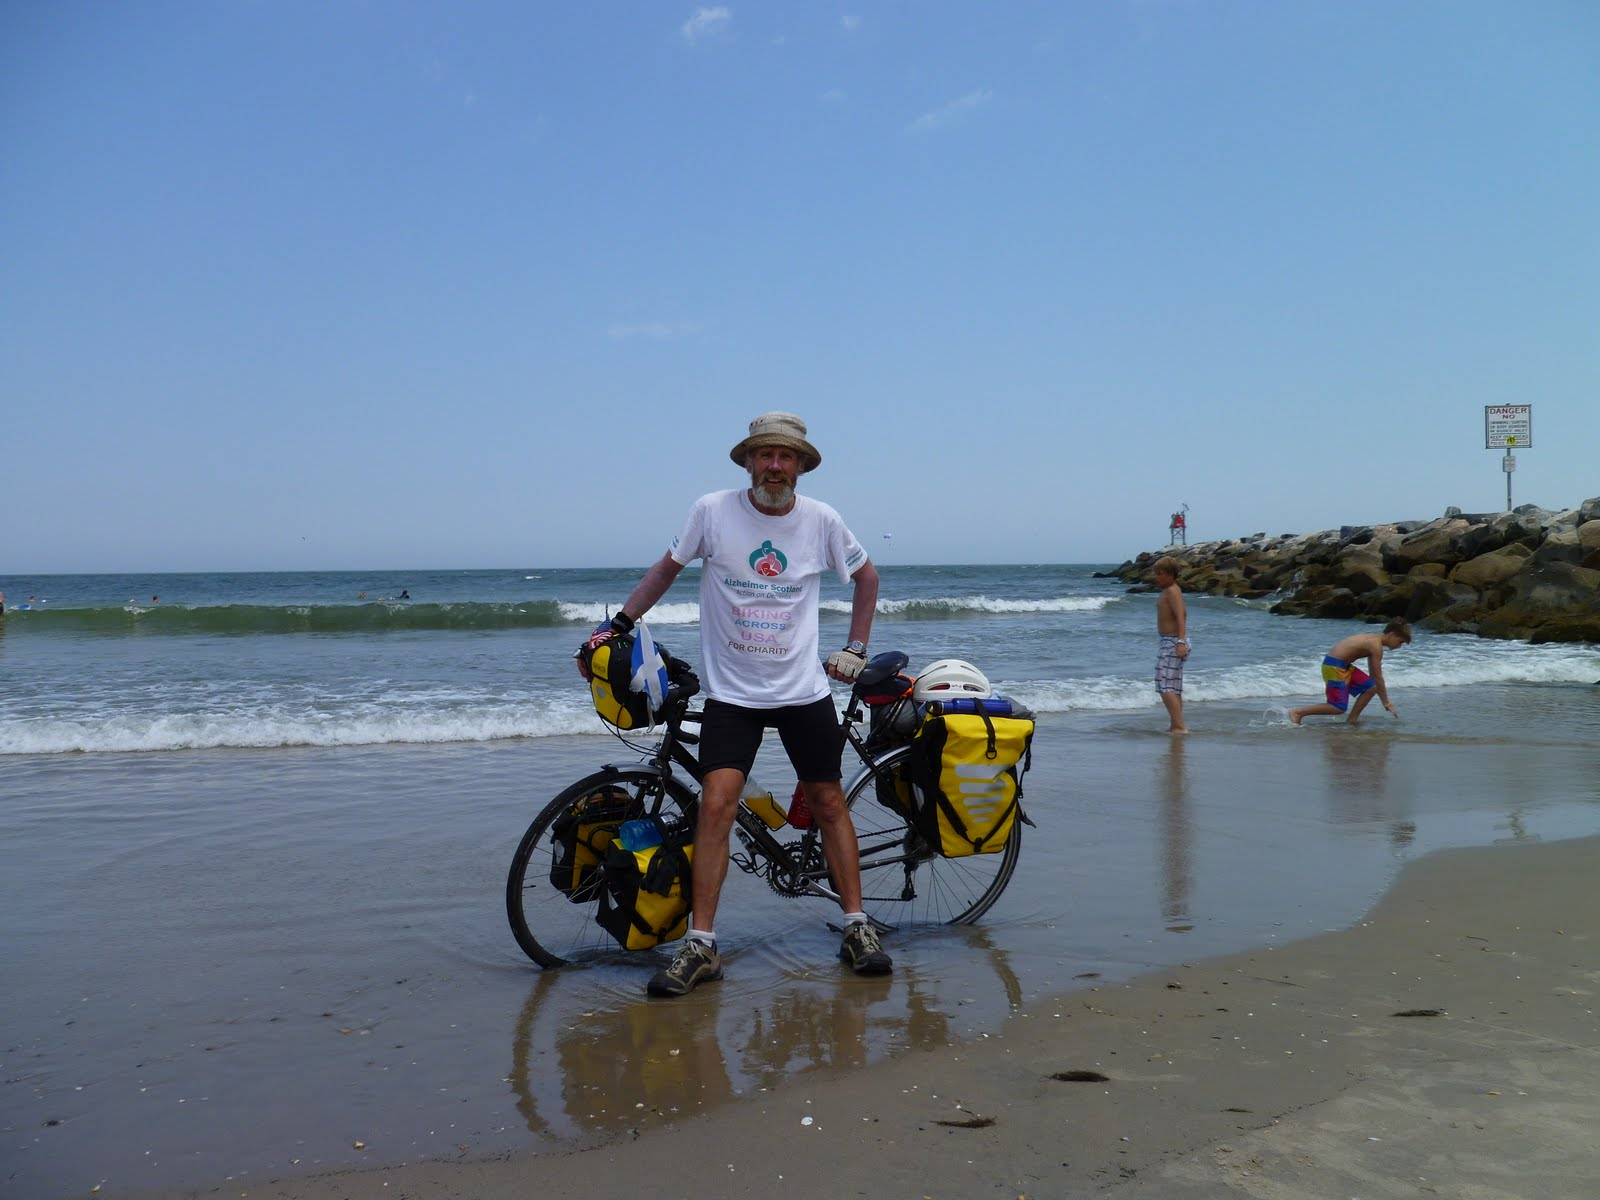 Biking across USA